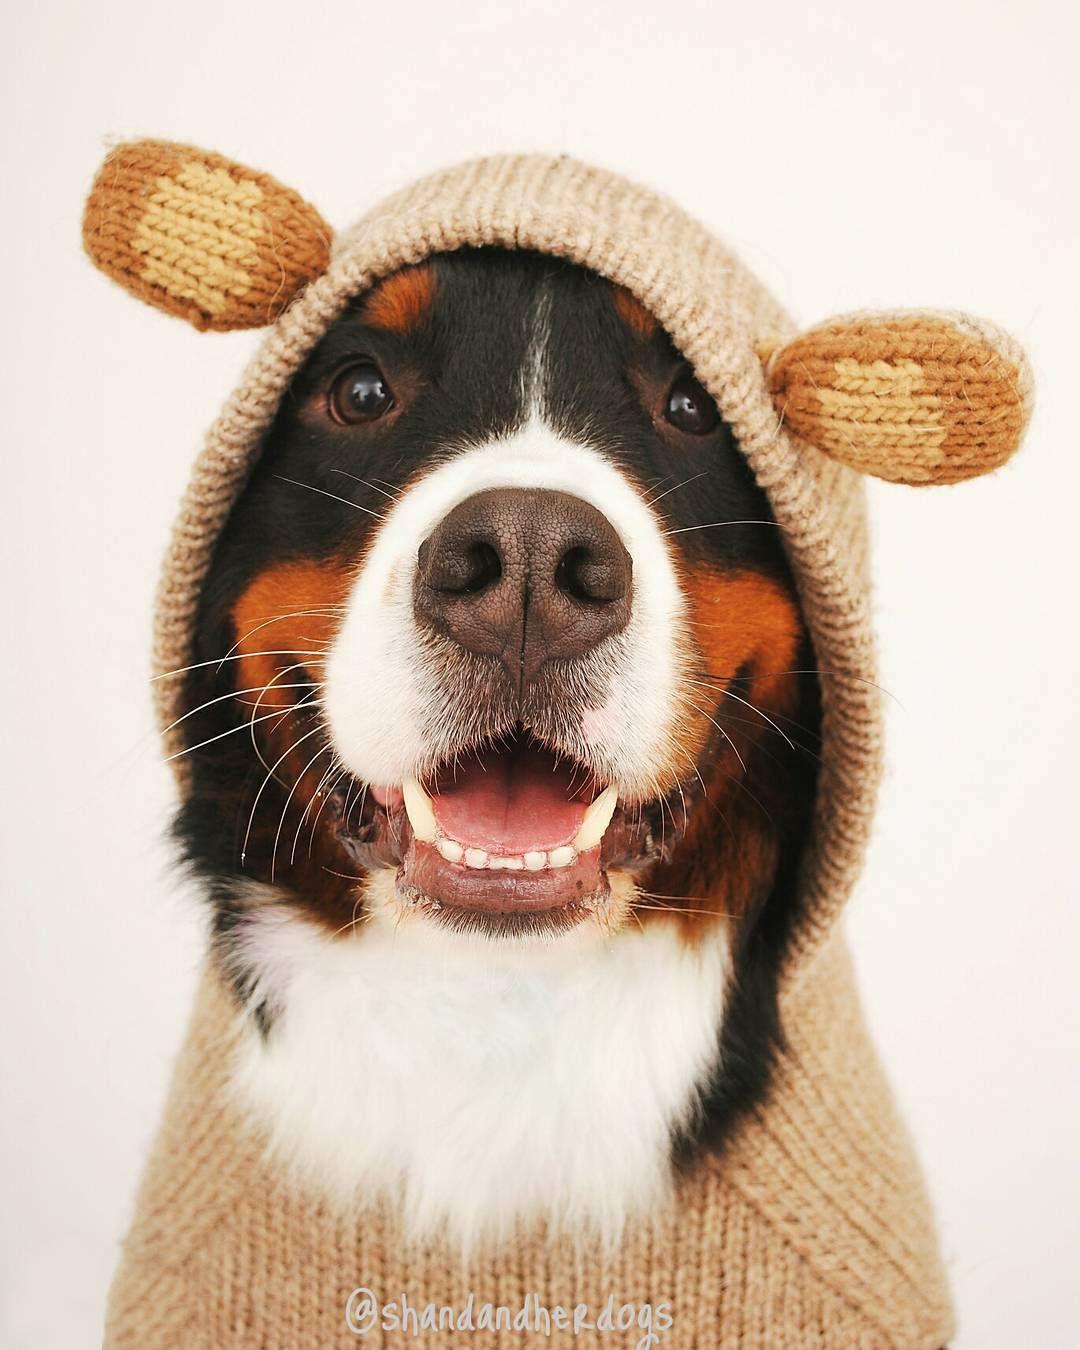 Bernese Mountain Dog Or Adorable Teddy Bear She And Her Dogs